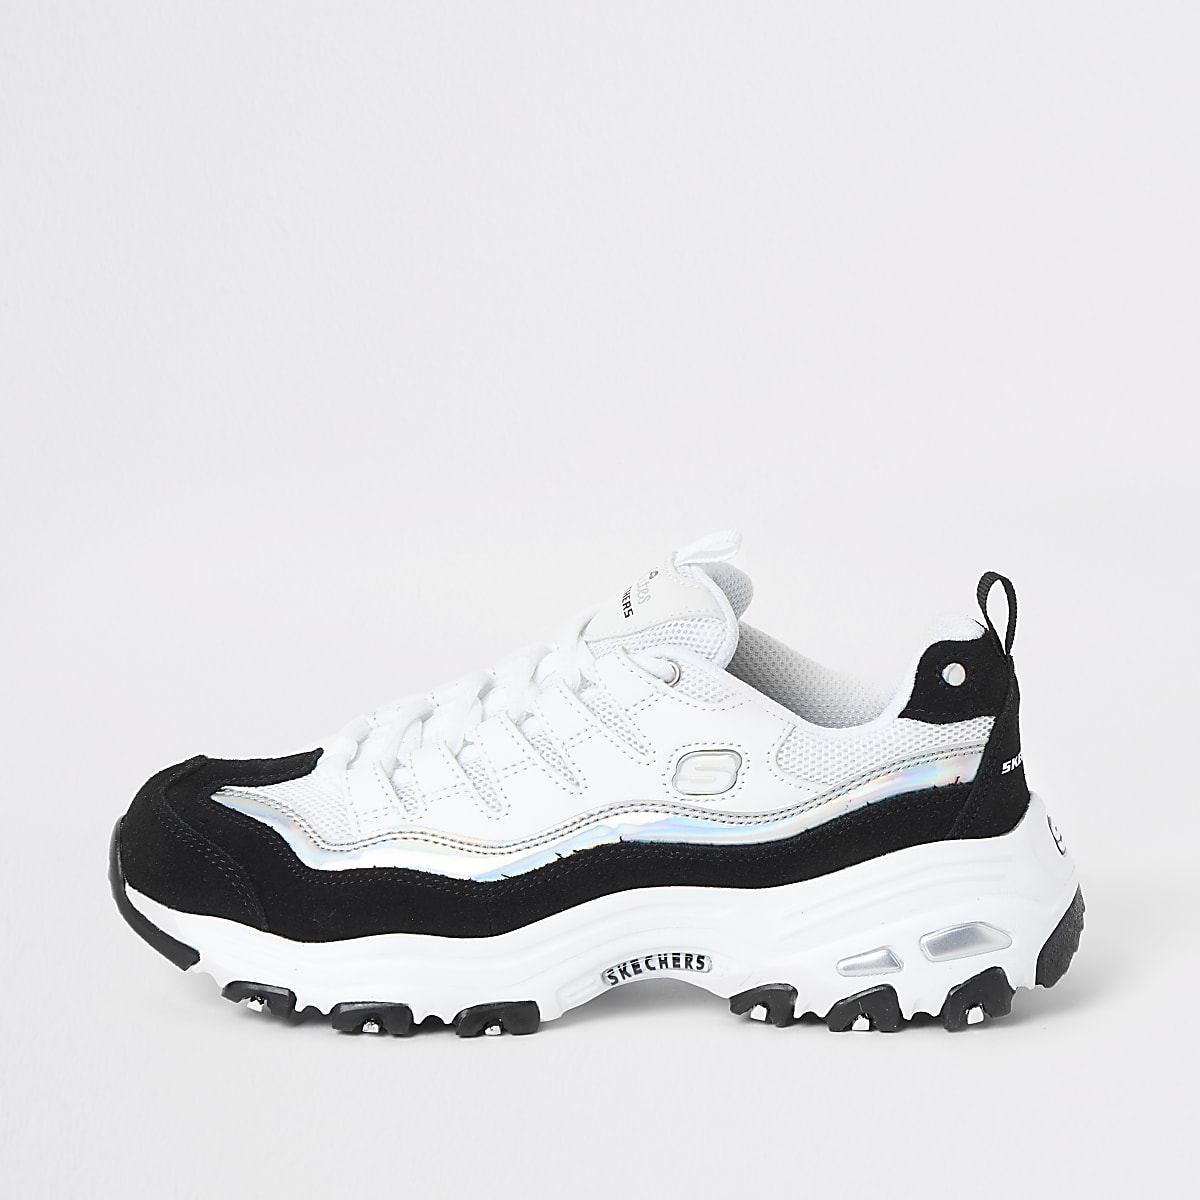 Skechers white Grand View sneakers